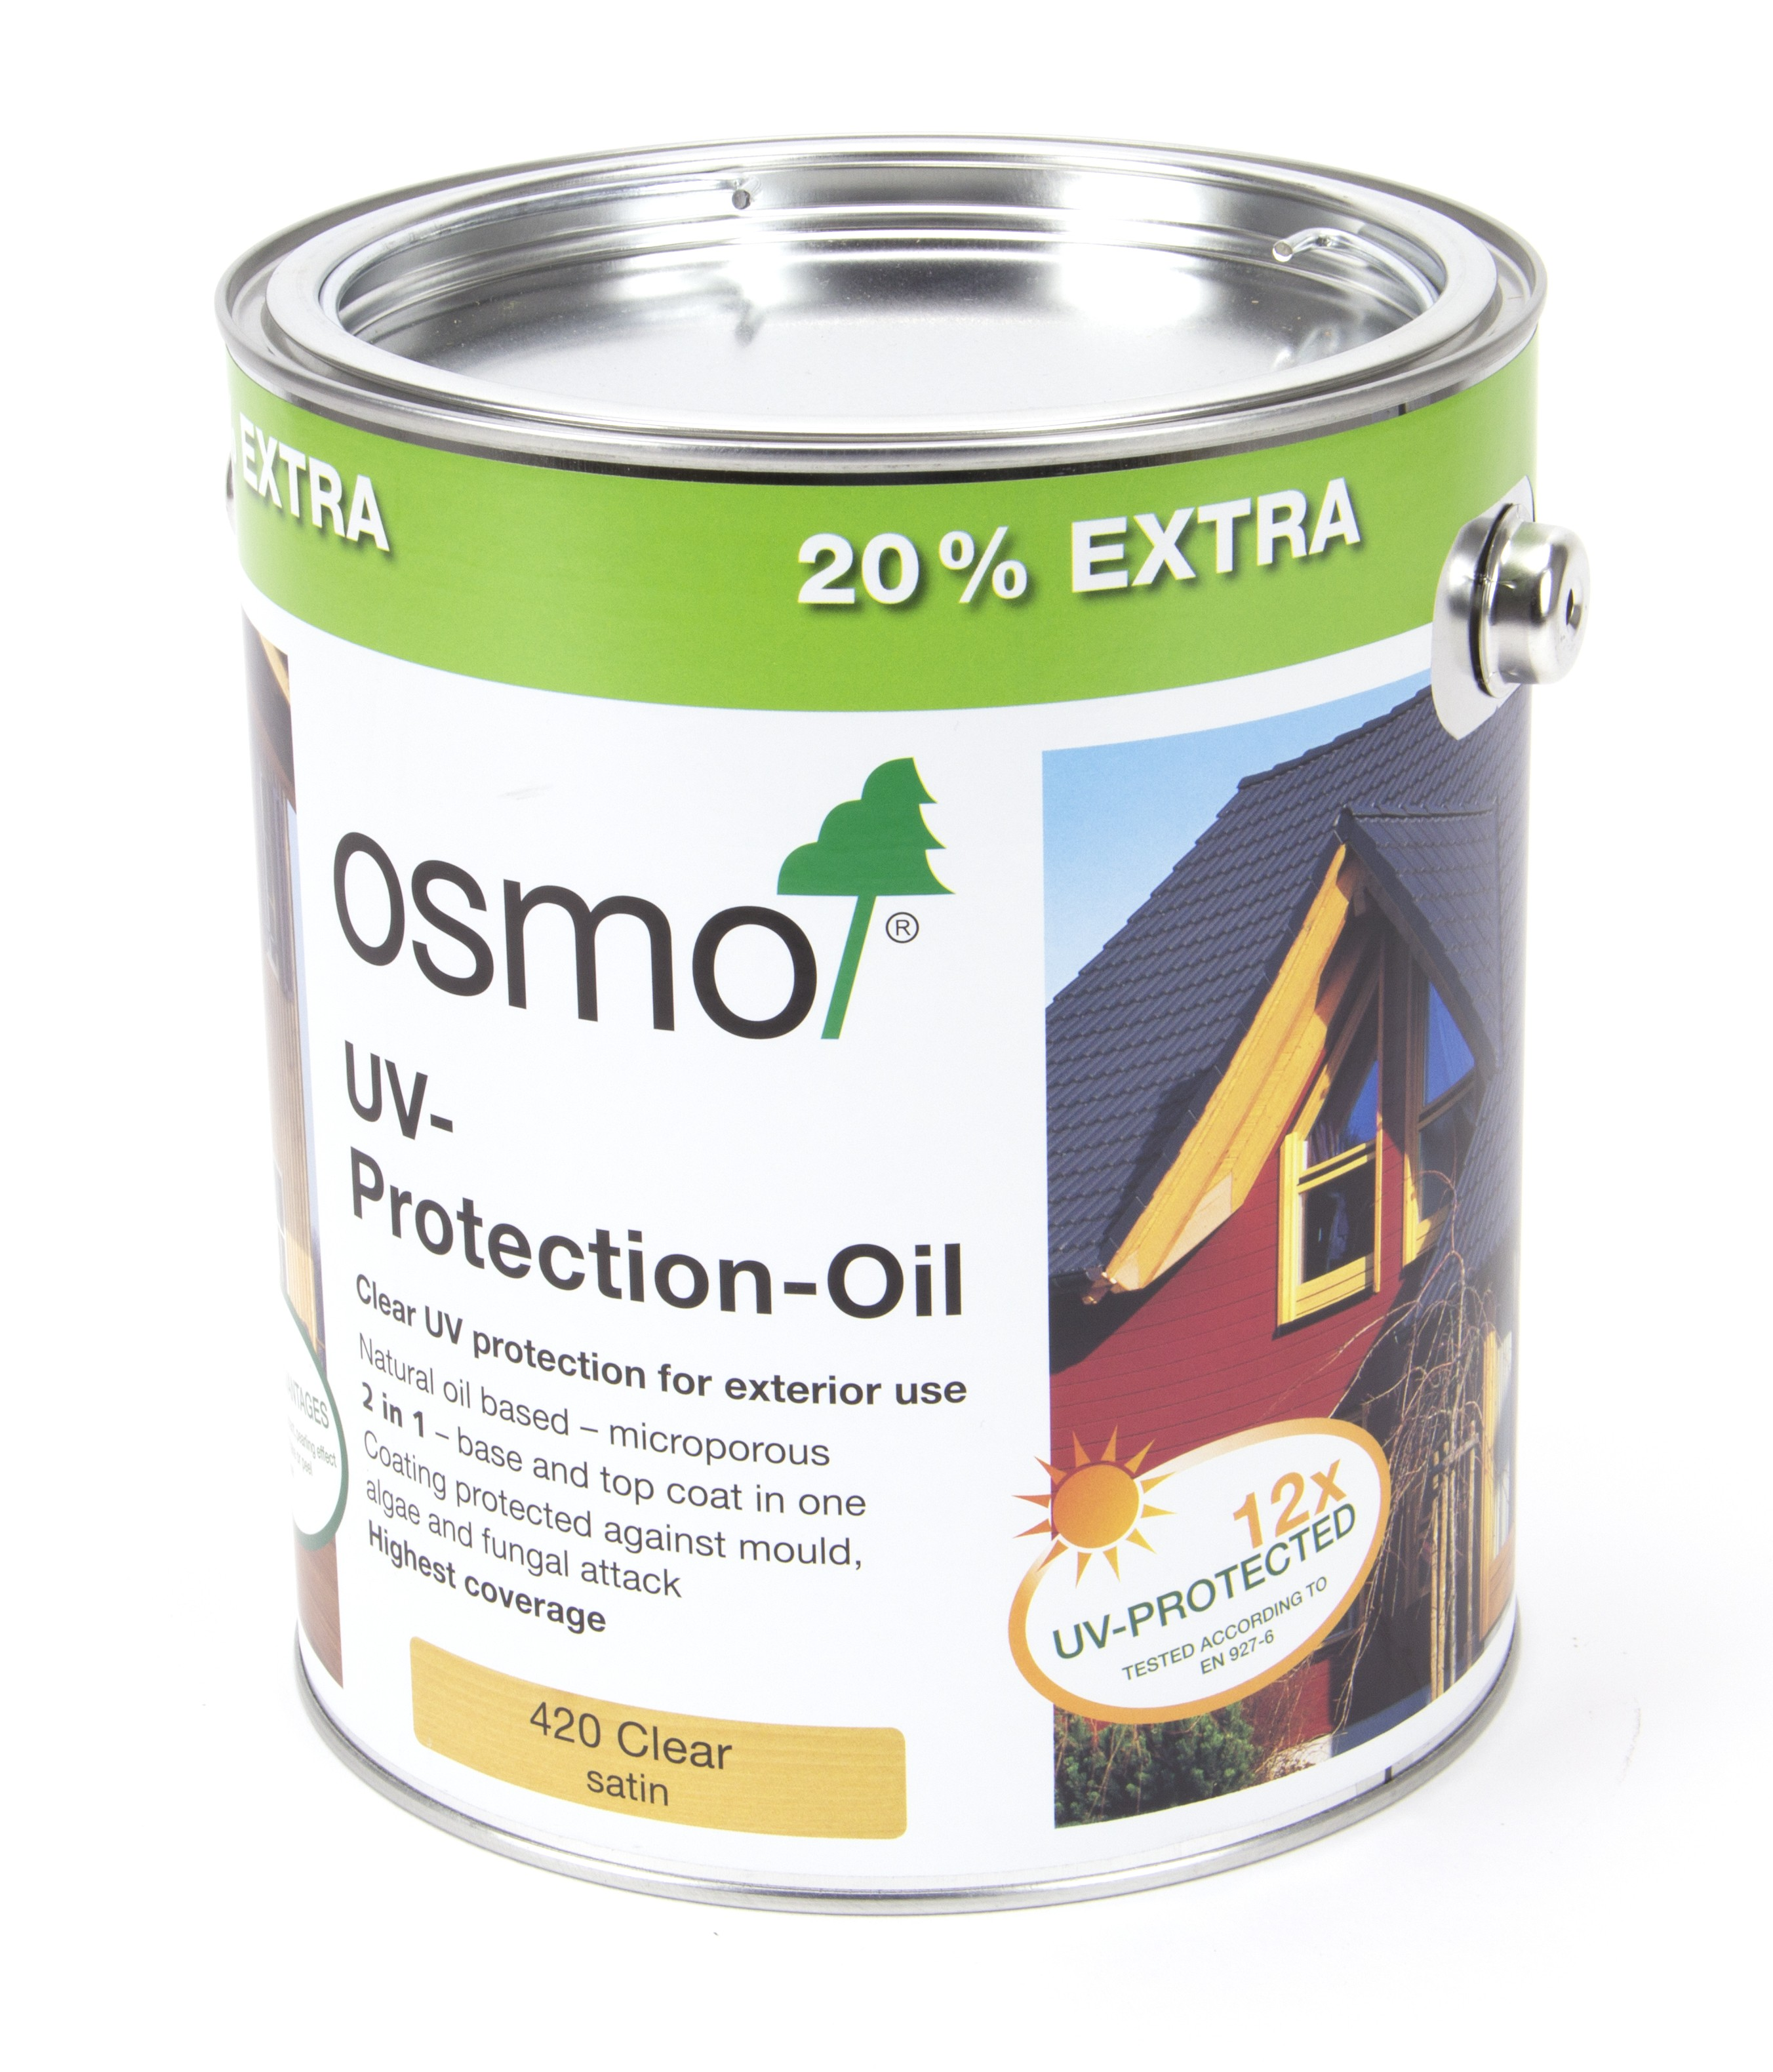 Osmo UV Protection Oil Extra (420) 3L Anniversary Tin (20% Extra Free) - Clear